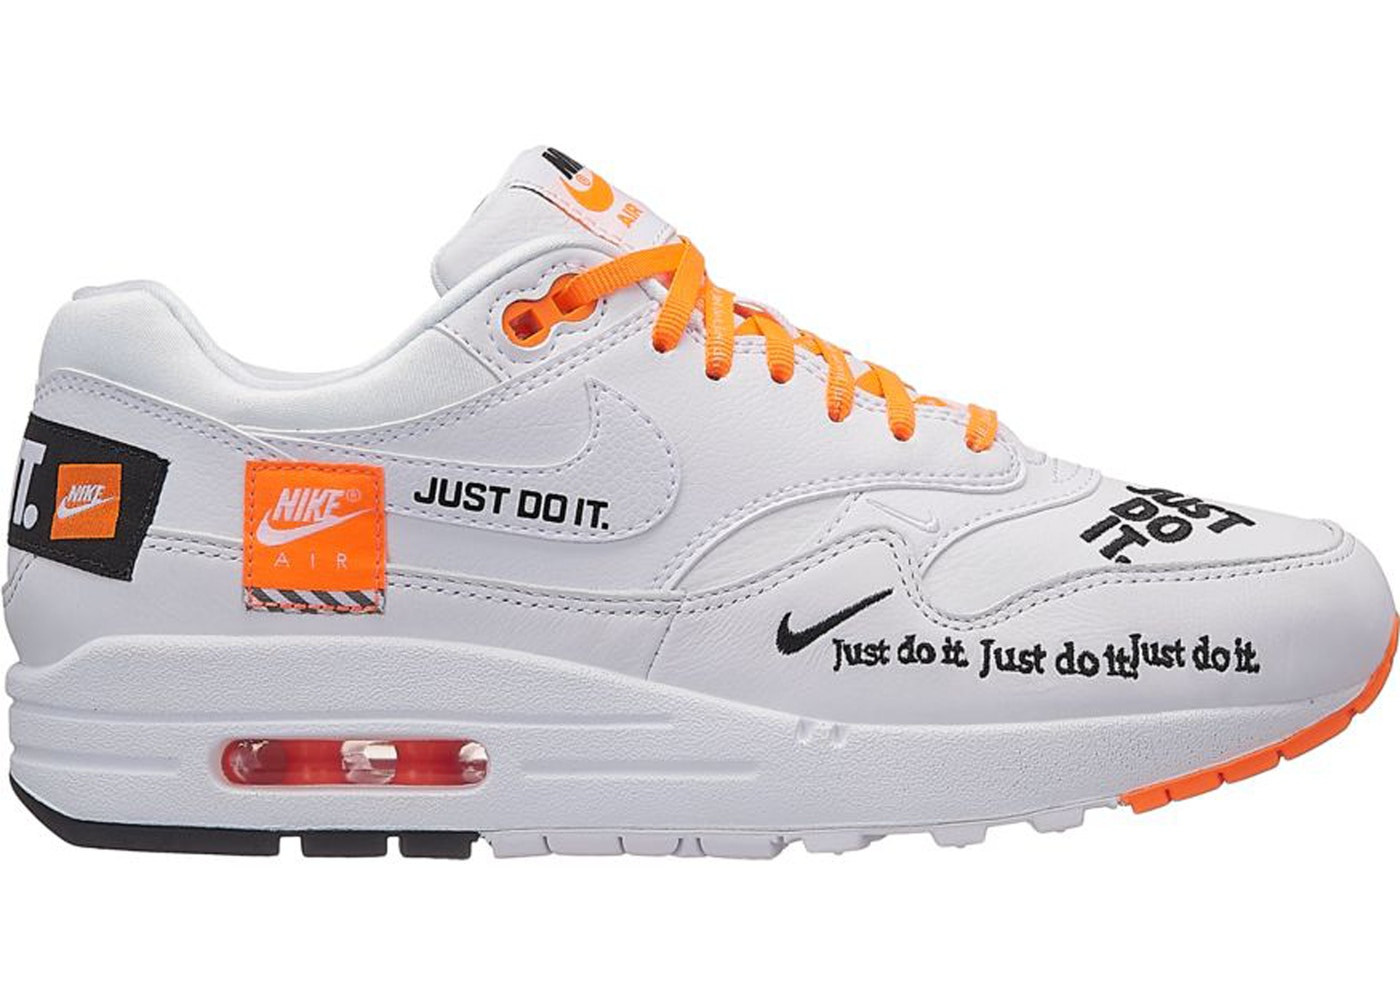 Nike Air Max 1 Just Do It Pack White